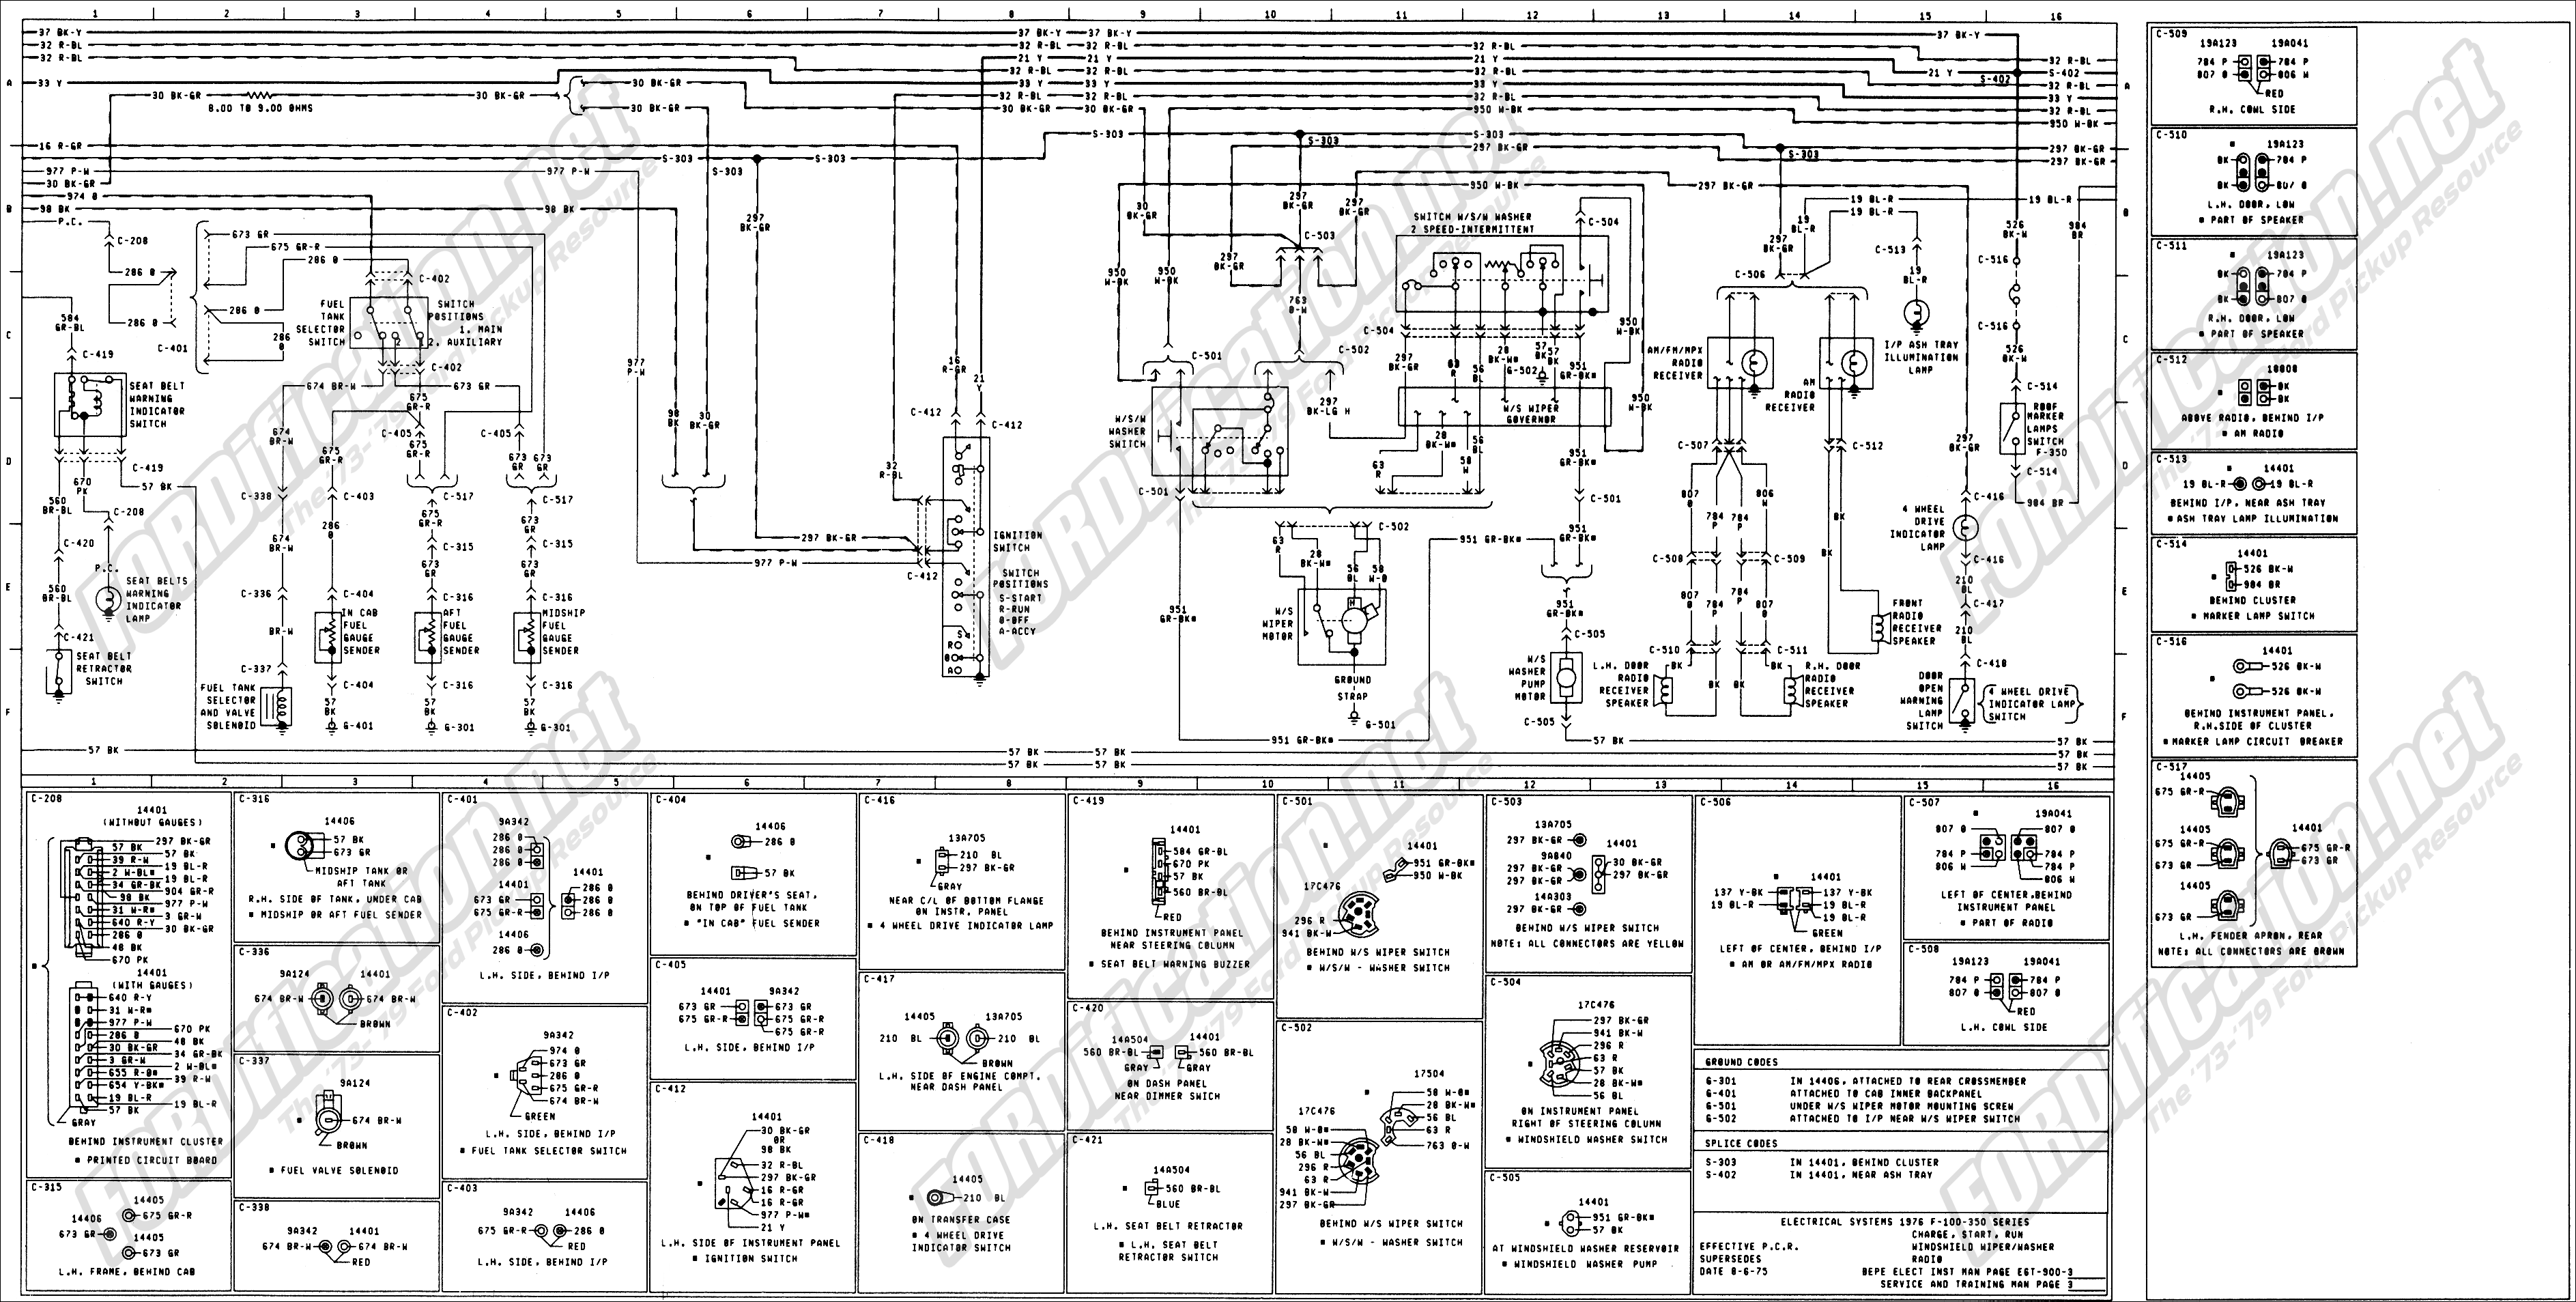 73 Ford Ranger Wiring Diagram Excellent Electrical 1987 Pickup Library Rh 33 Csu Lichtenhof De 1998